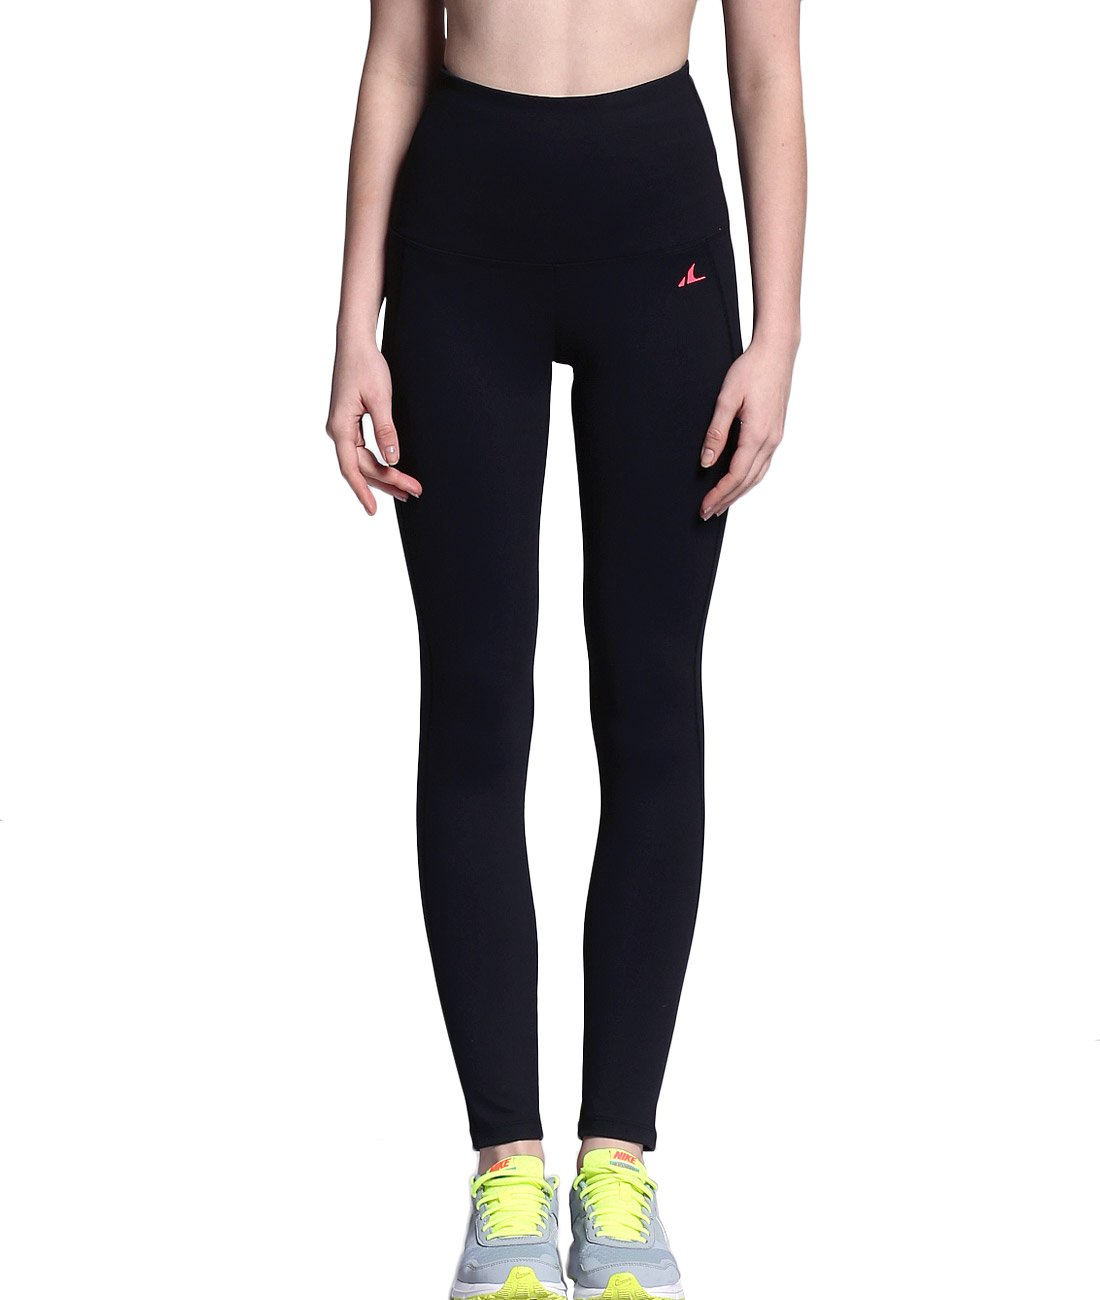 Coovy Athlete Juniors & Teens Women's Training Compression Tights Pants Leggings